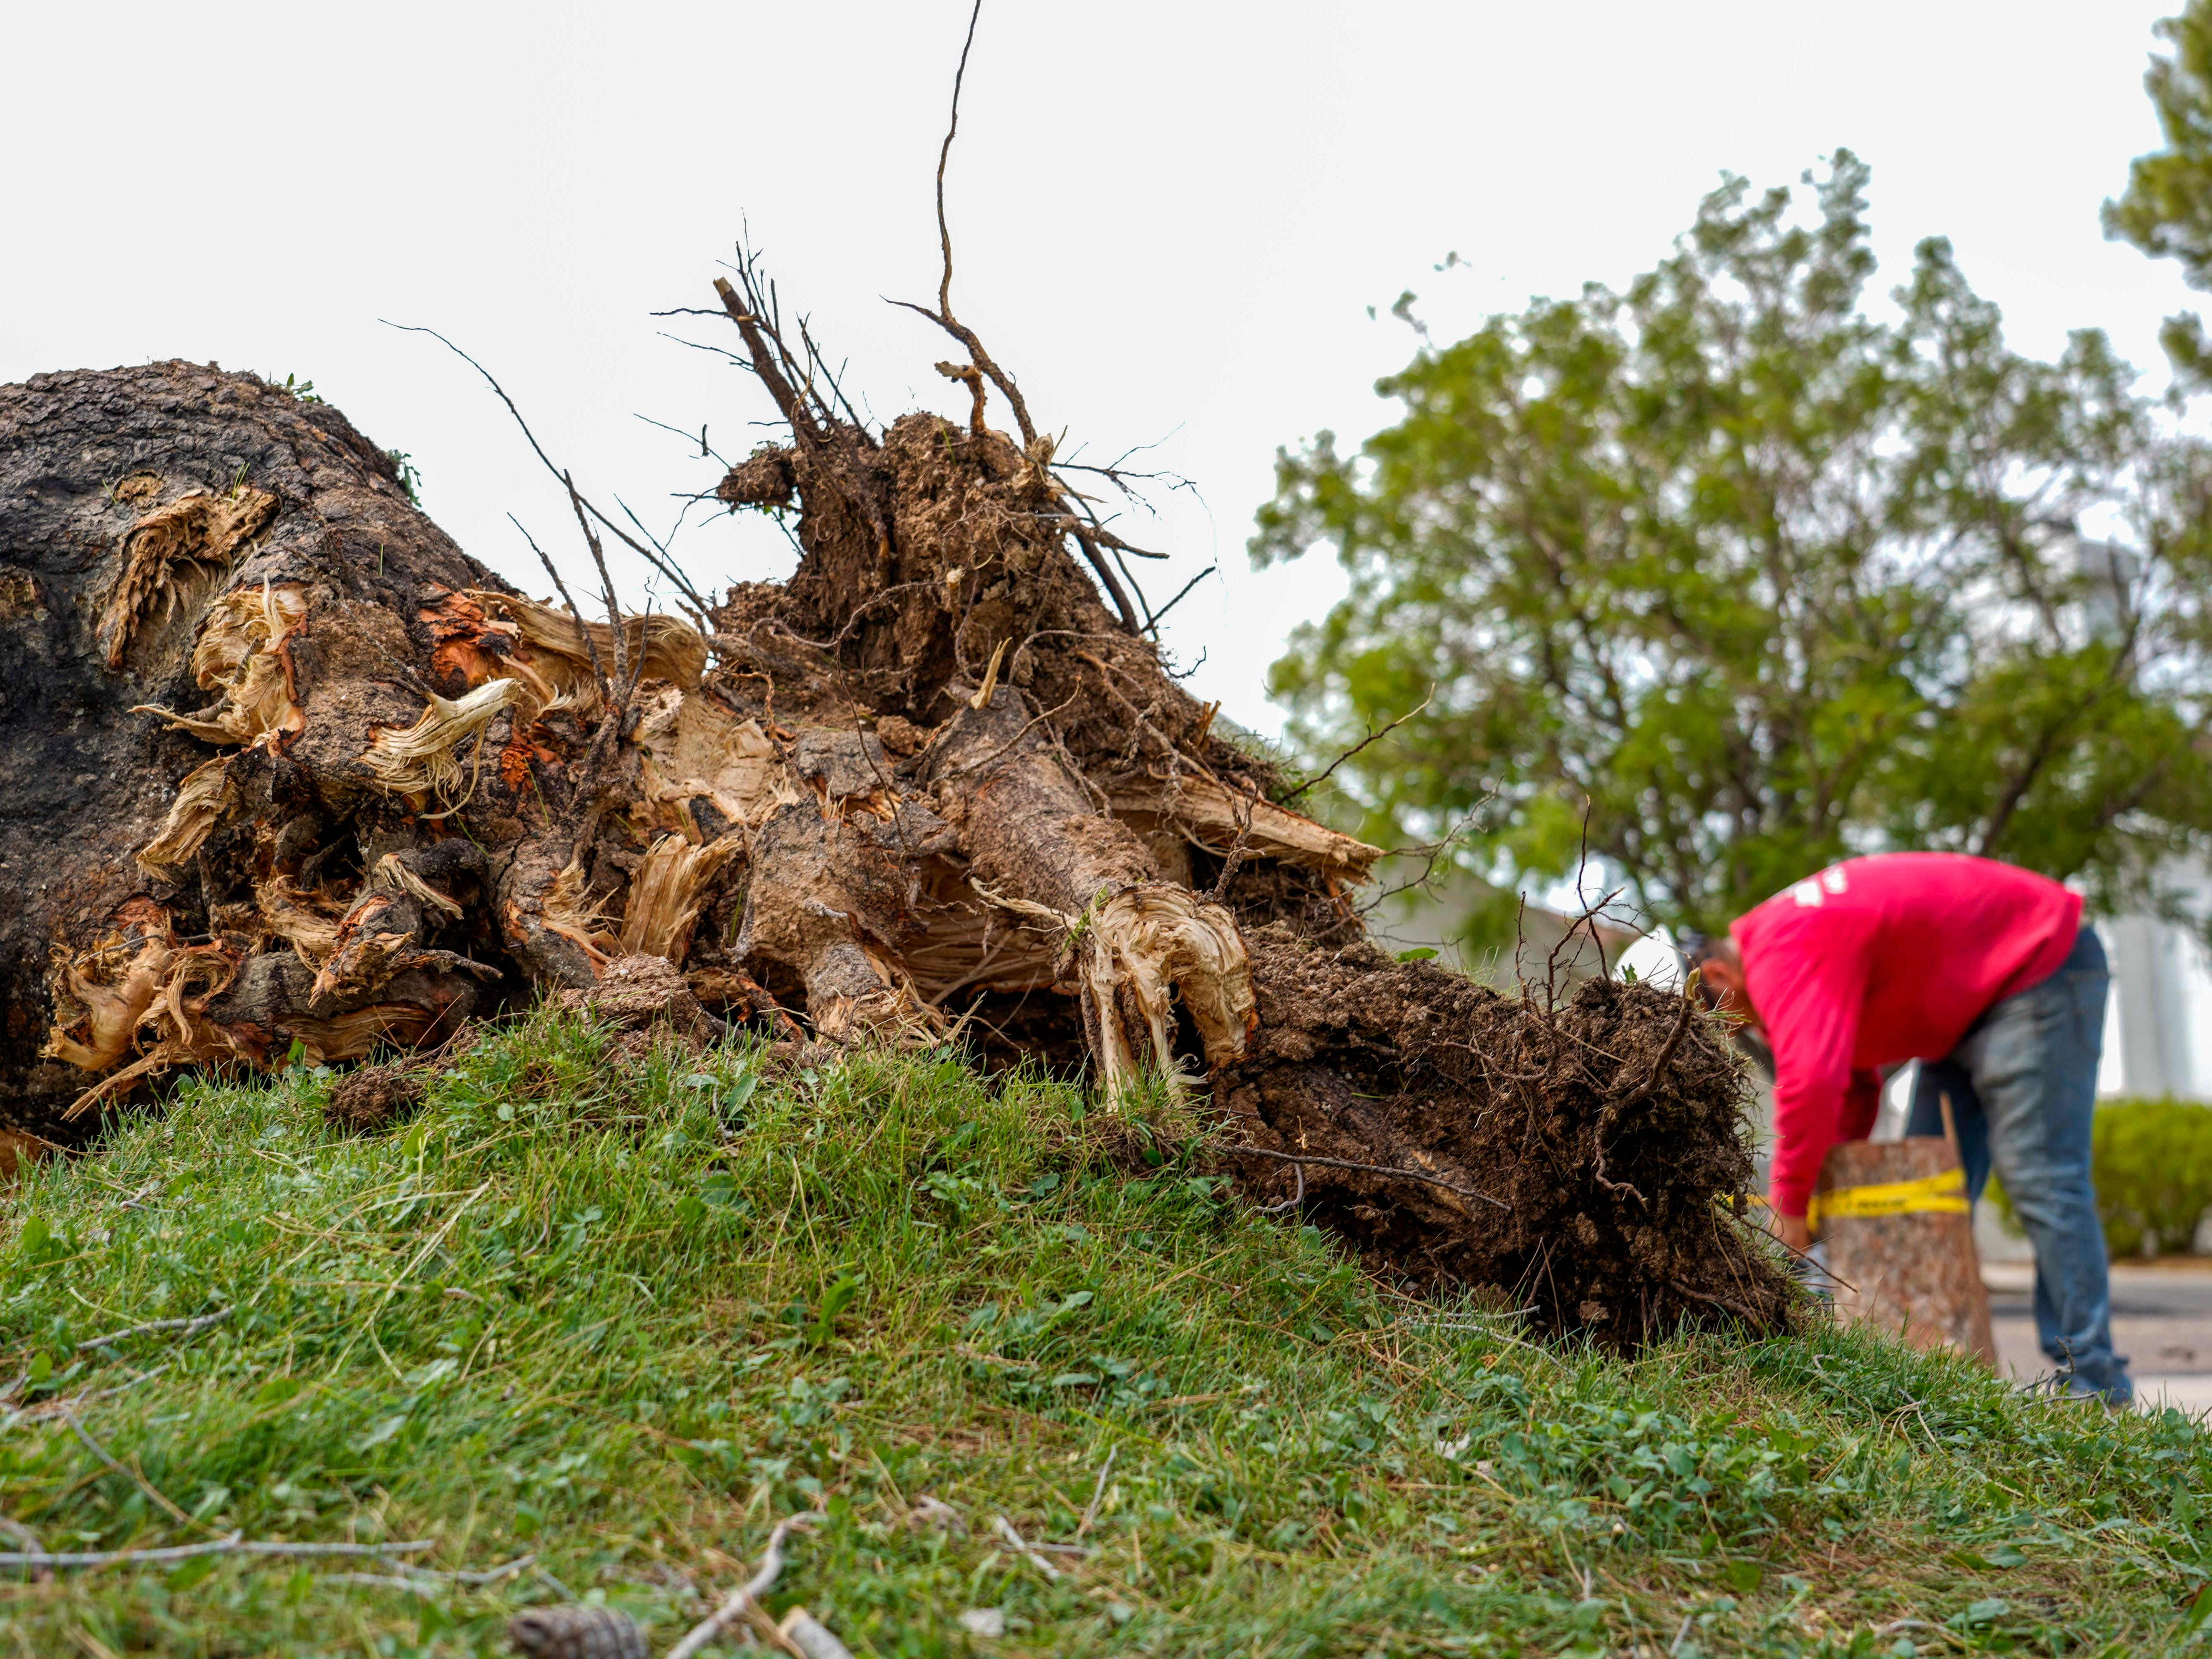 Felipe Piña and his crew cut up fallen trees July 31, 2018, near North 32nd Way and Longhorn Drive that were felled by monsoon storm from the night before.